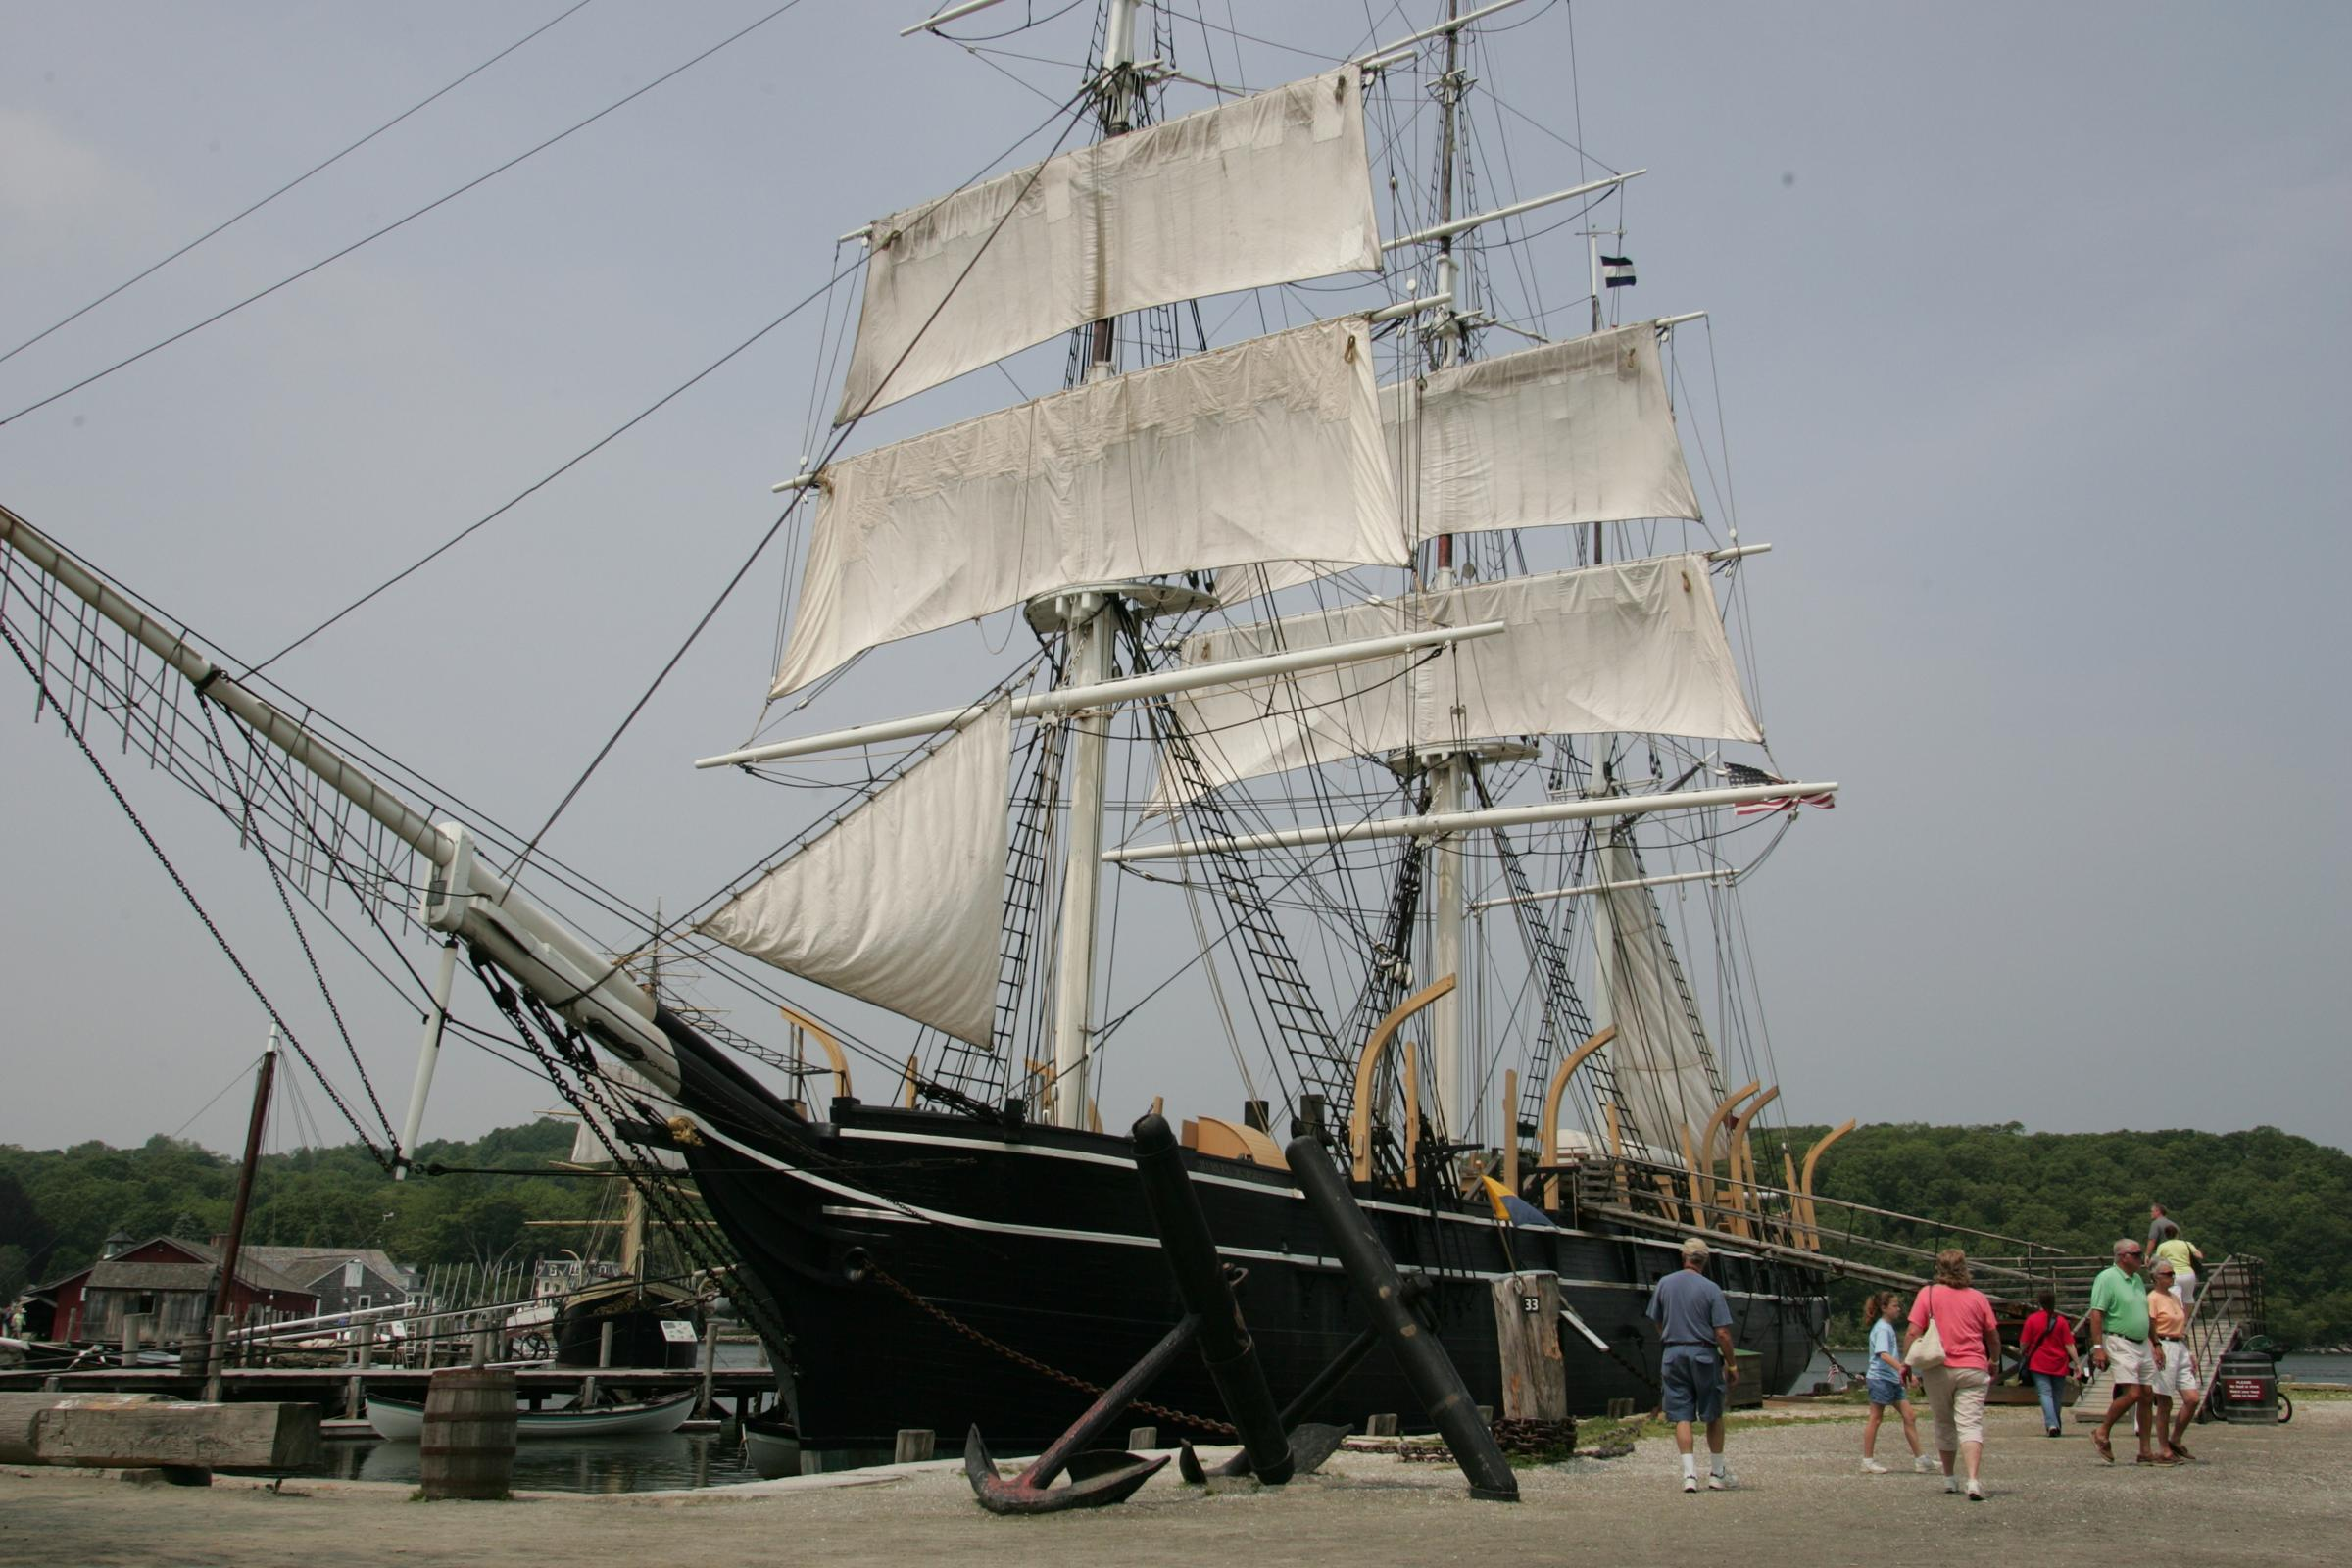 The Charles W. Morgan docked at Mystic Seaport after its 21st century restoration.